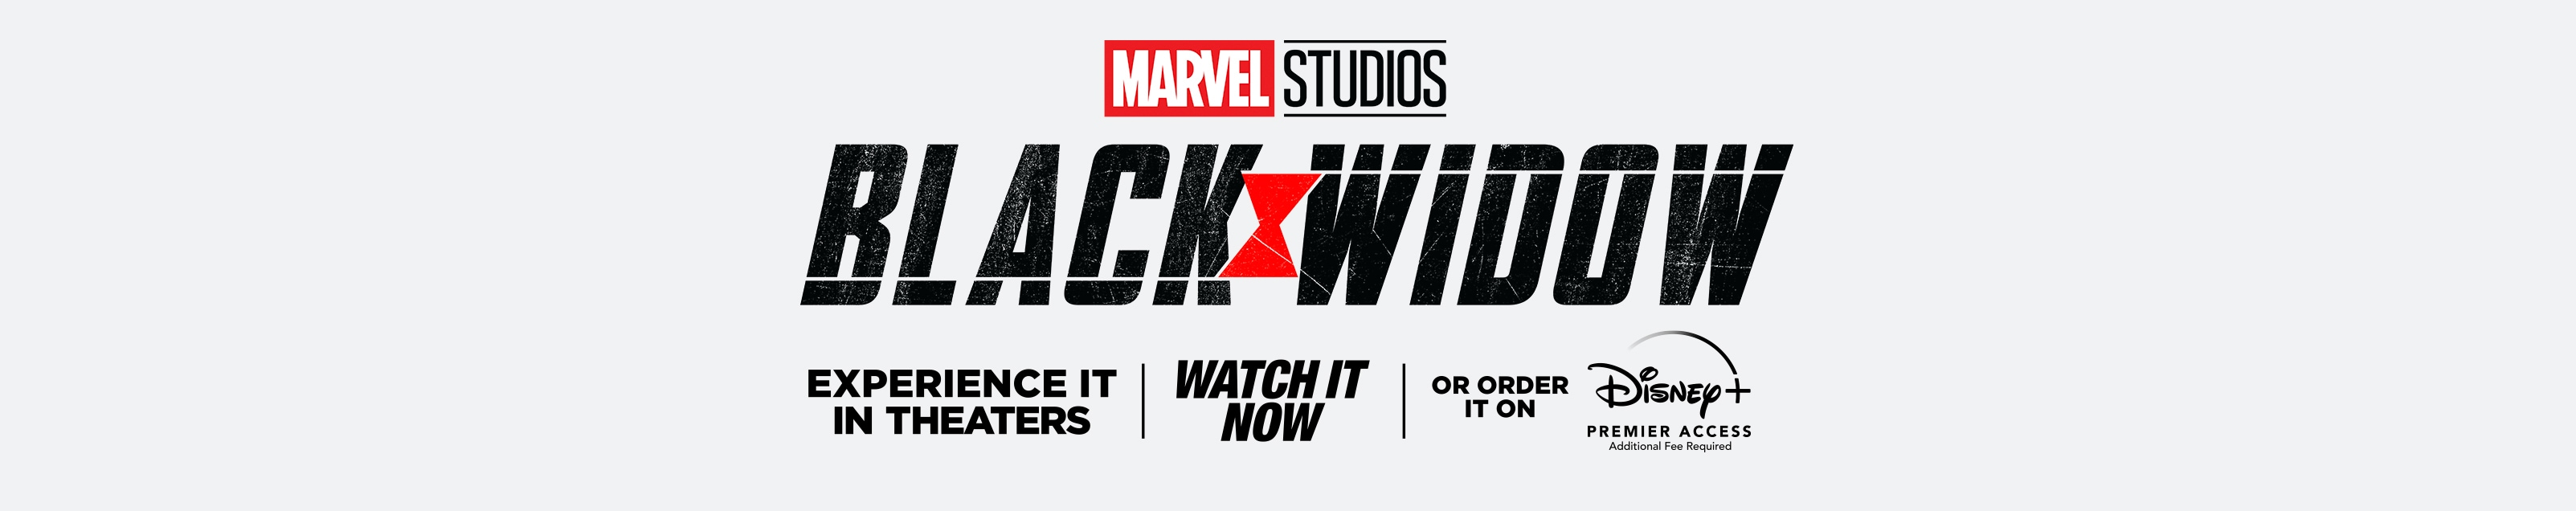 Marvel Studios | Black Widow | Experience it in theaters | Watch it now | Or order it on DIsney+ Premier Access | Additional fee required.